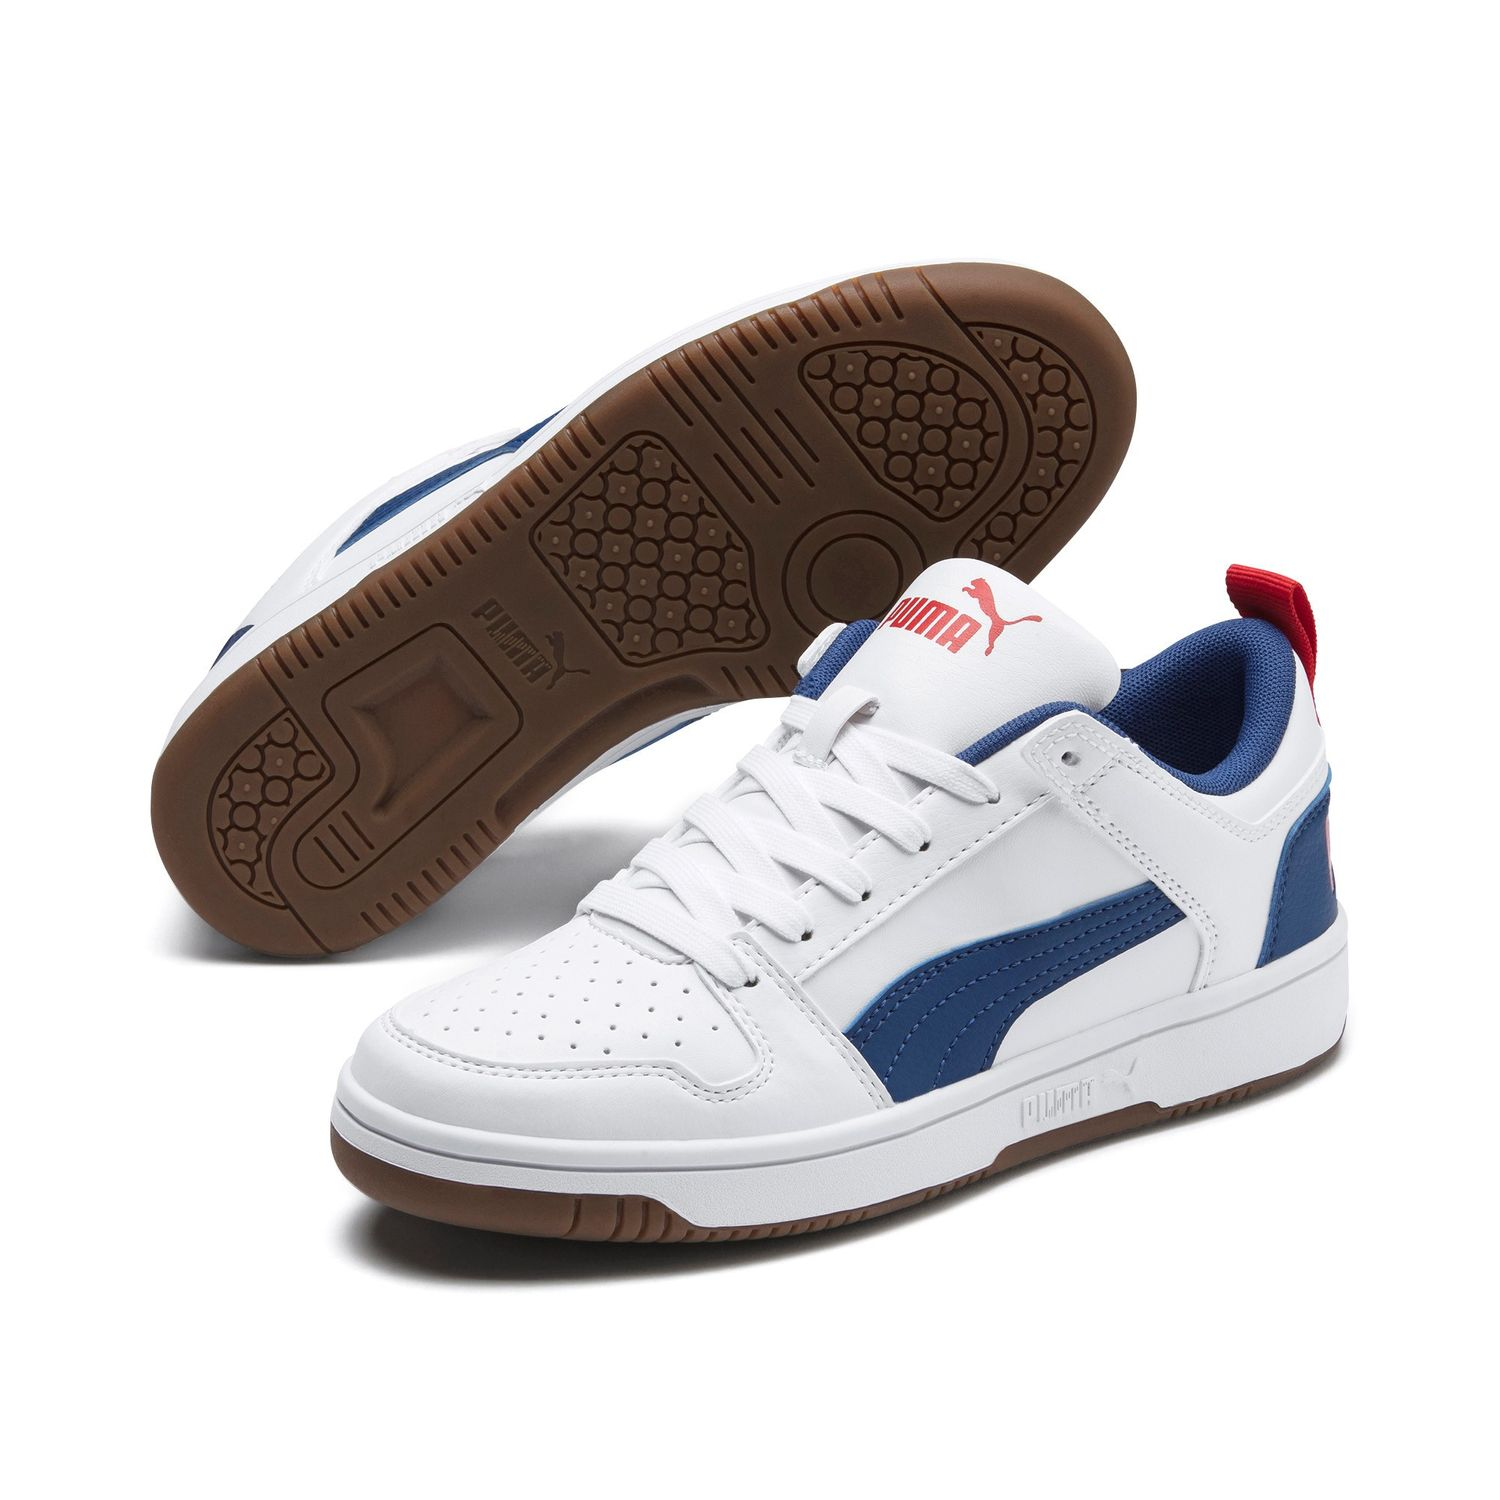 Details about Puma Rebound Layup Lo Sl Jr Shoes Trainers 370490 White Blue Red